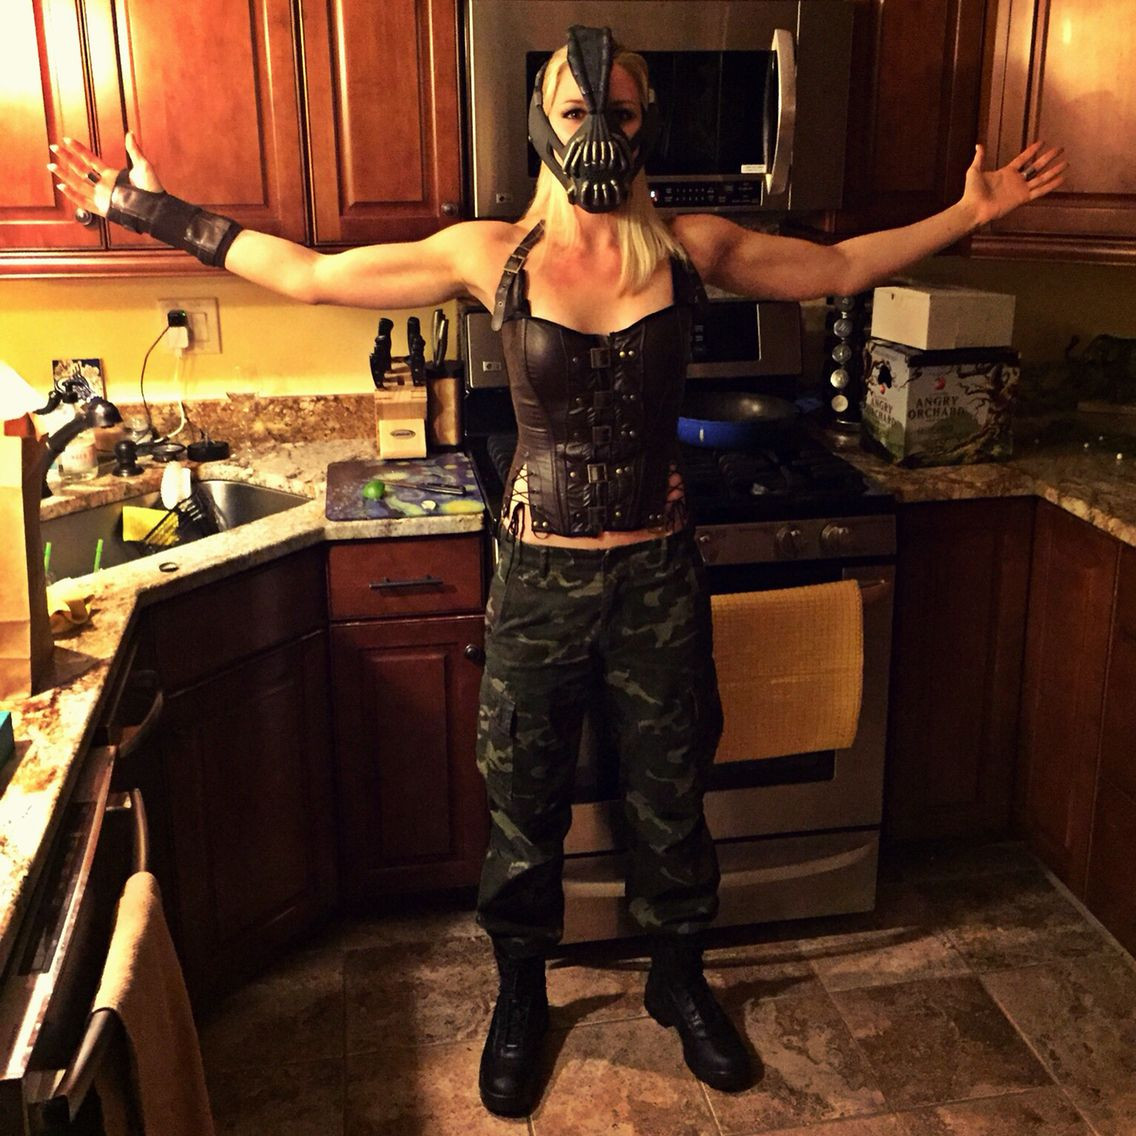 Best ideas about DIY Bane Mask . Save or Pin Female Bane Costume DIY Clothes Pinterest Now.